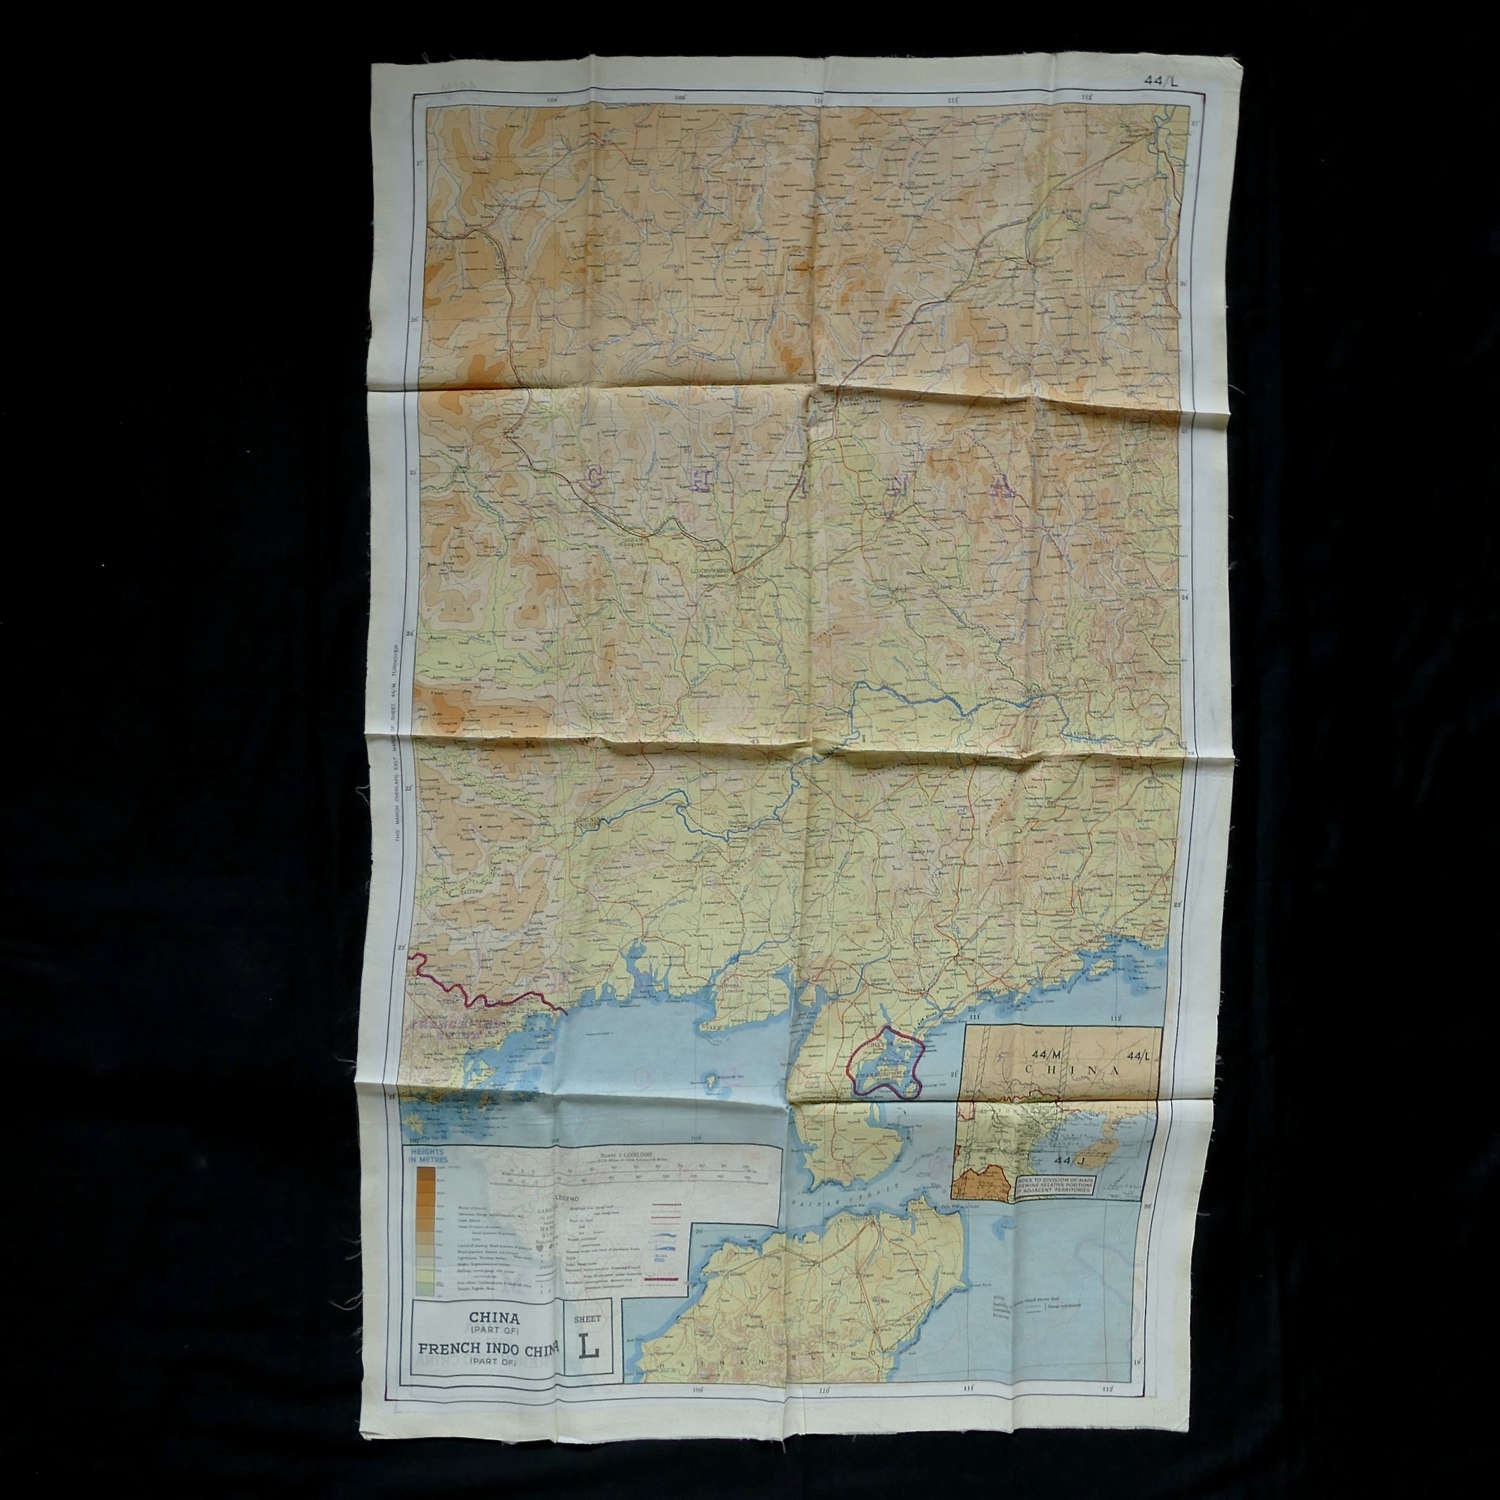 RAF escape & evasion map, 44L/M